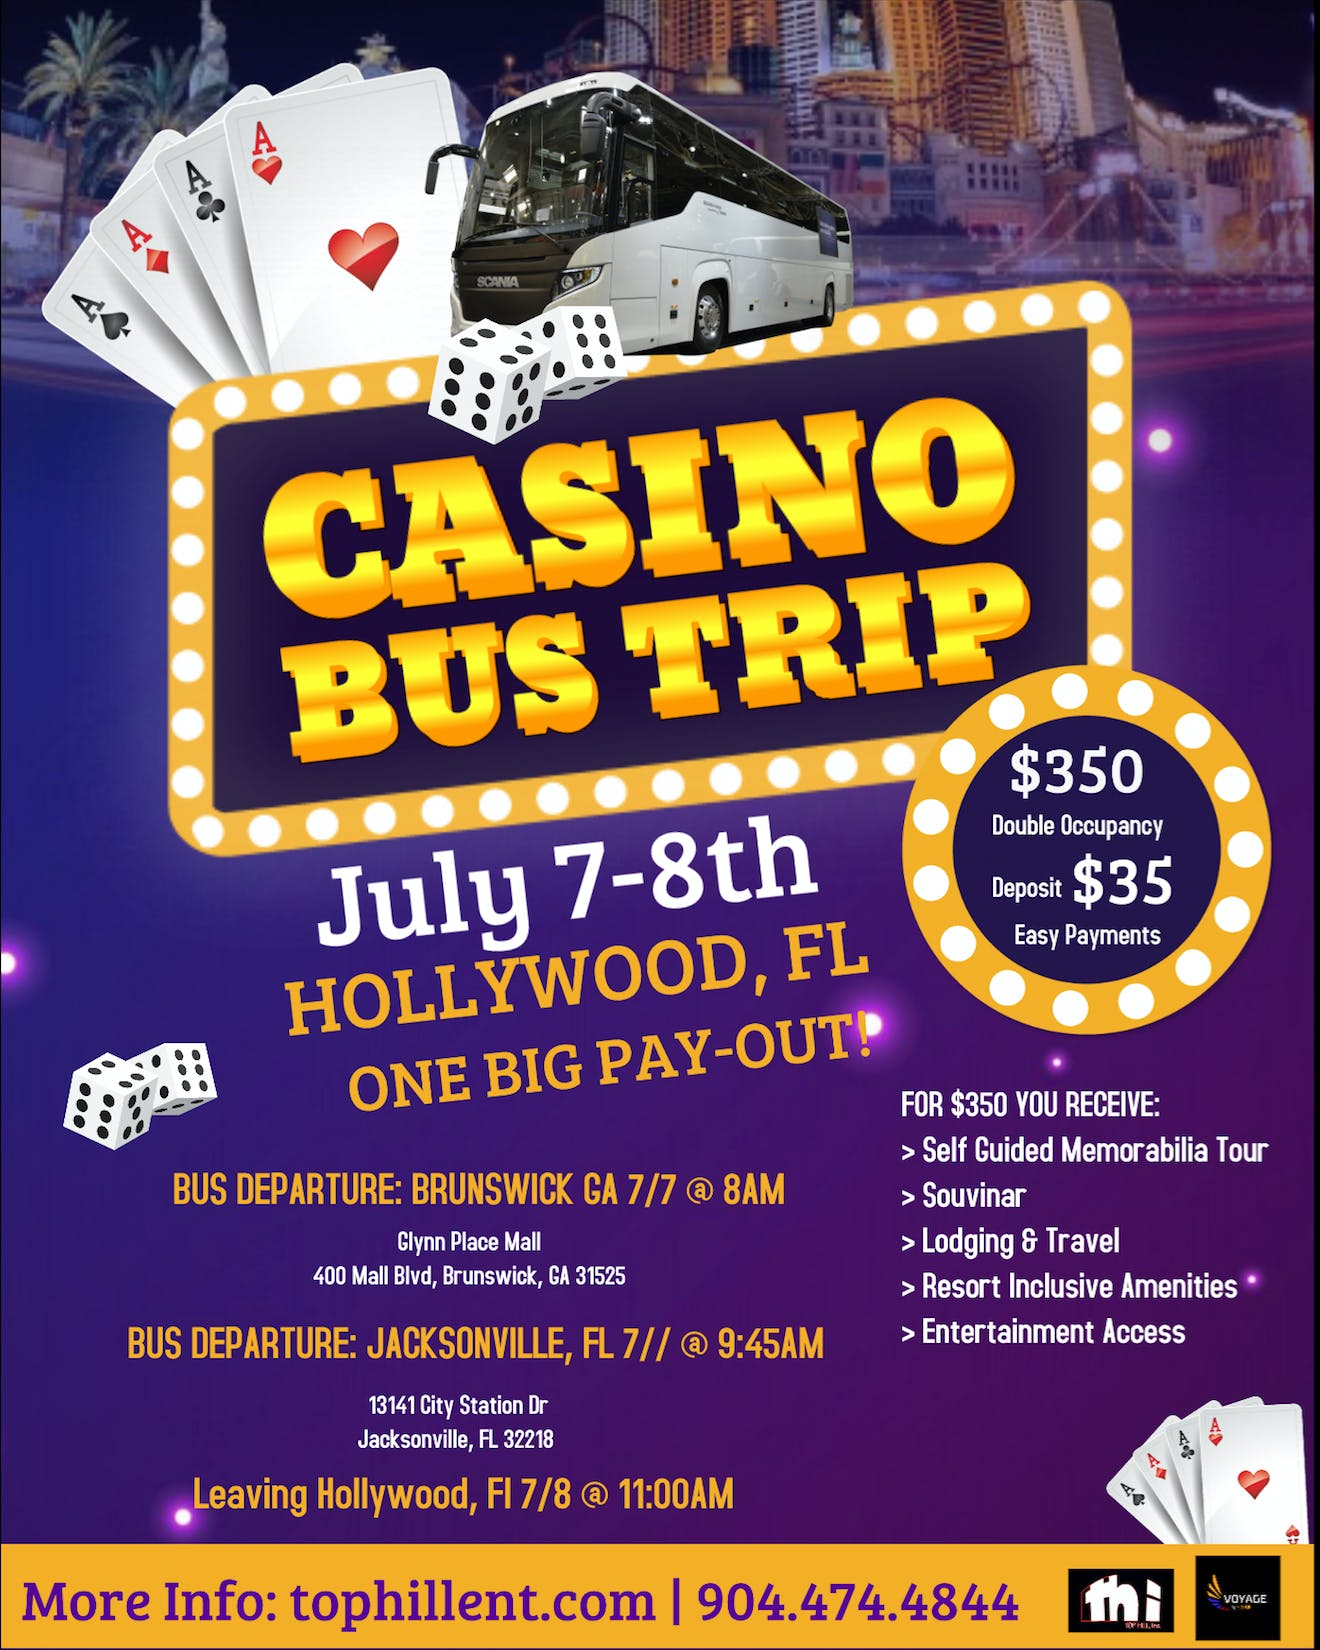 Casino Bus Trip: Rolling for a Reason